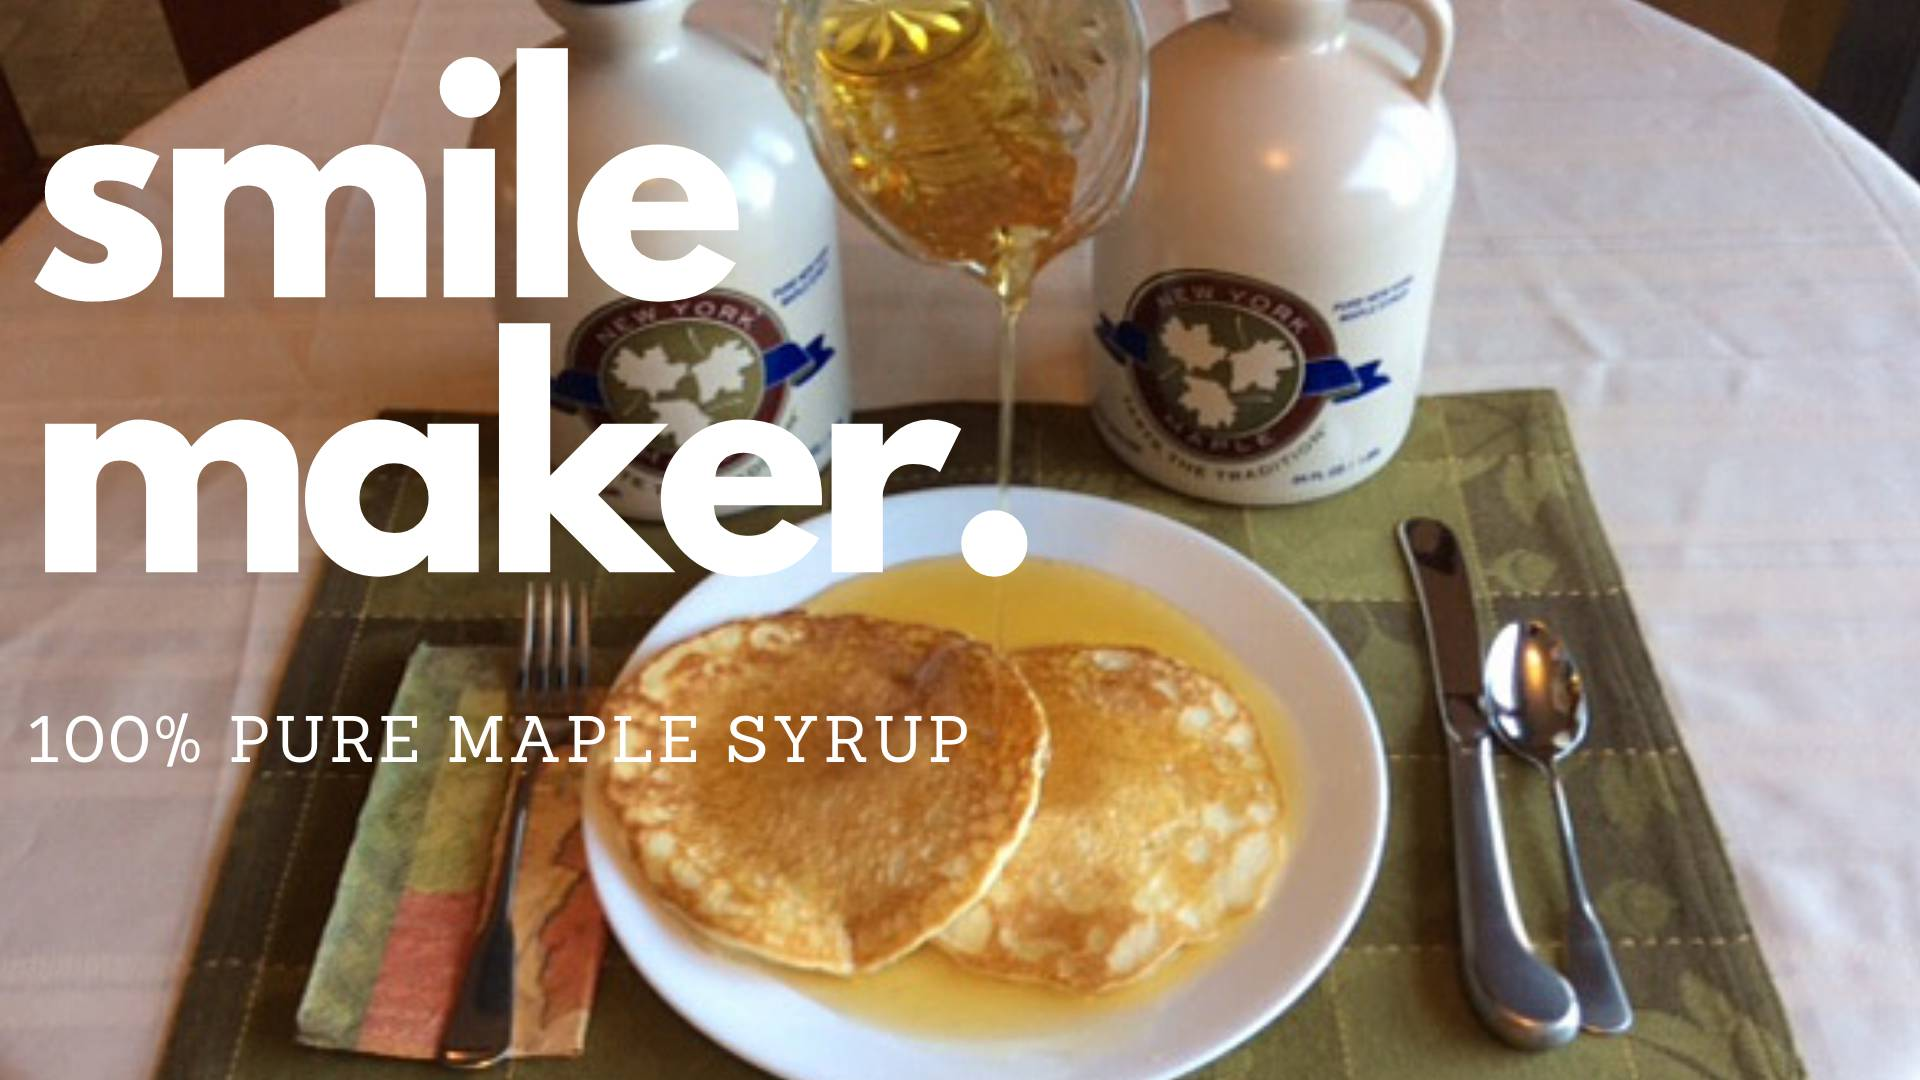 Smile Maker. 100% Pure Maple Syrup. - You Really Want To Click The Button